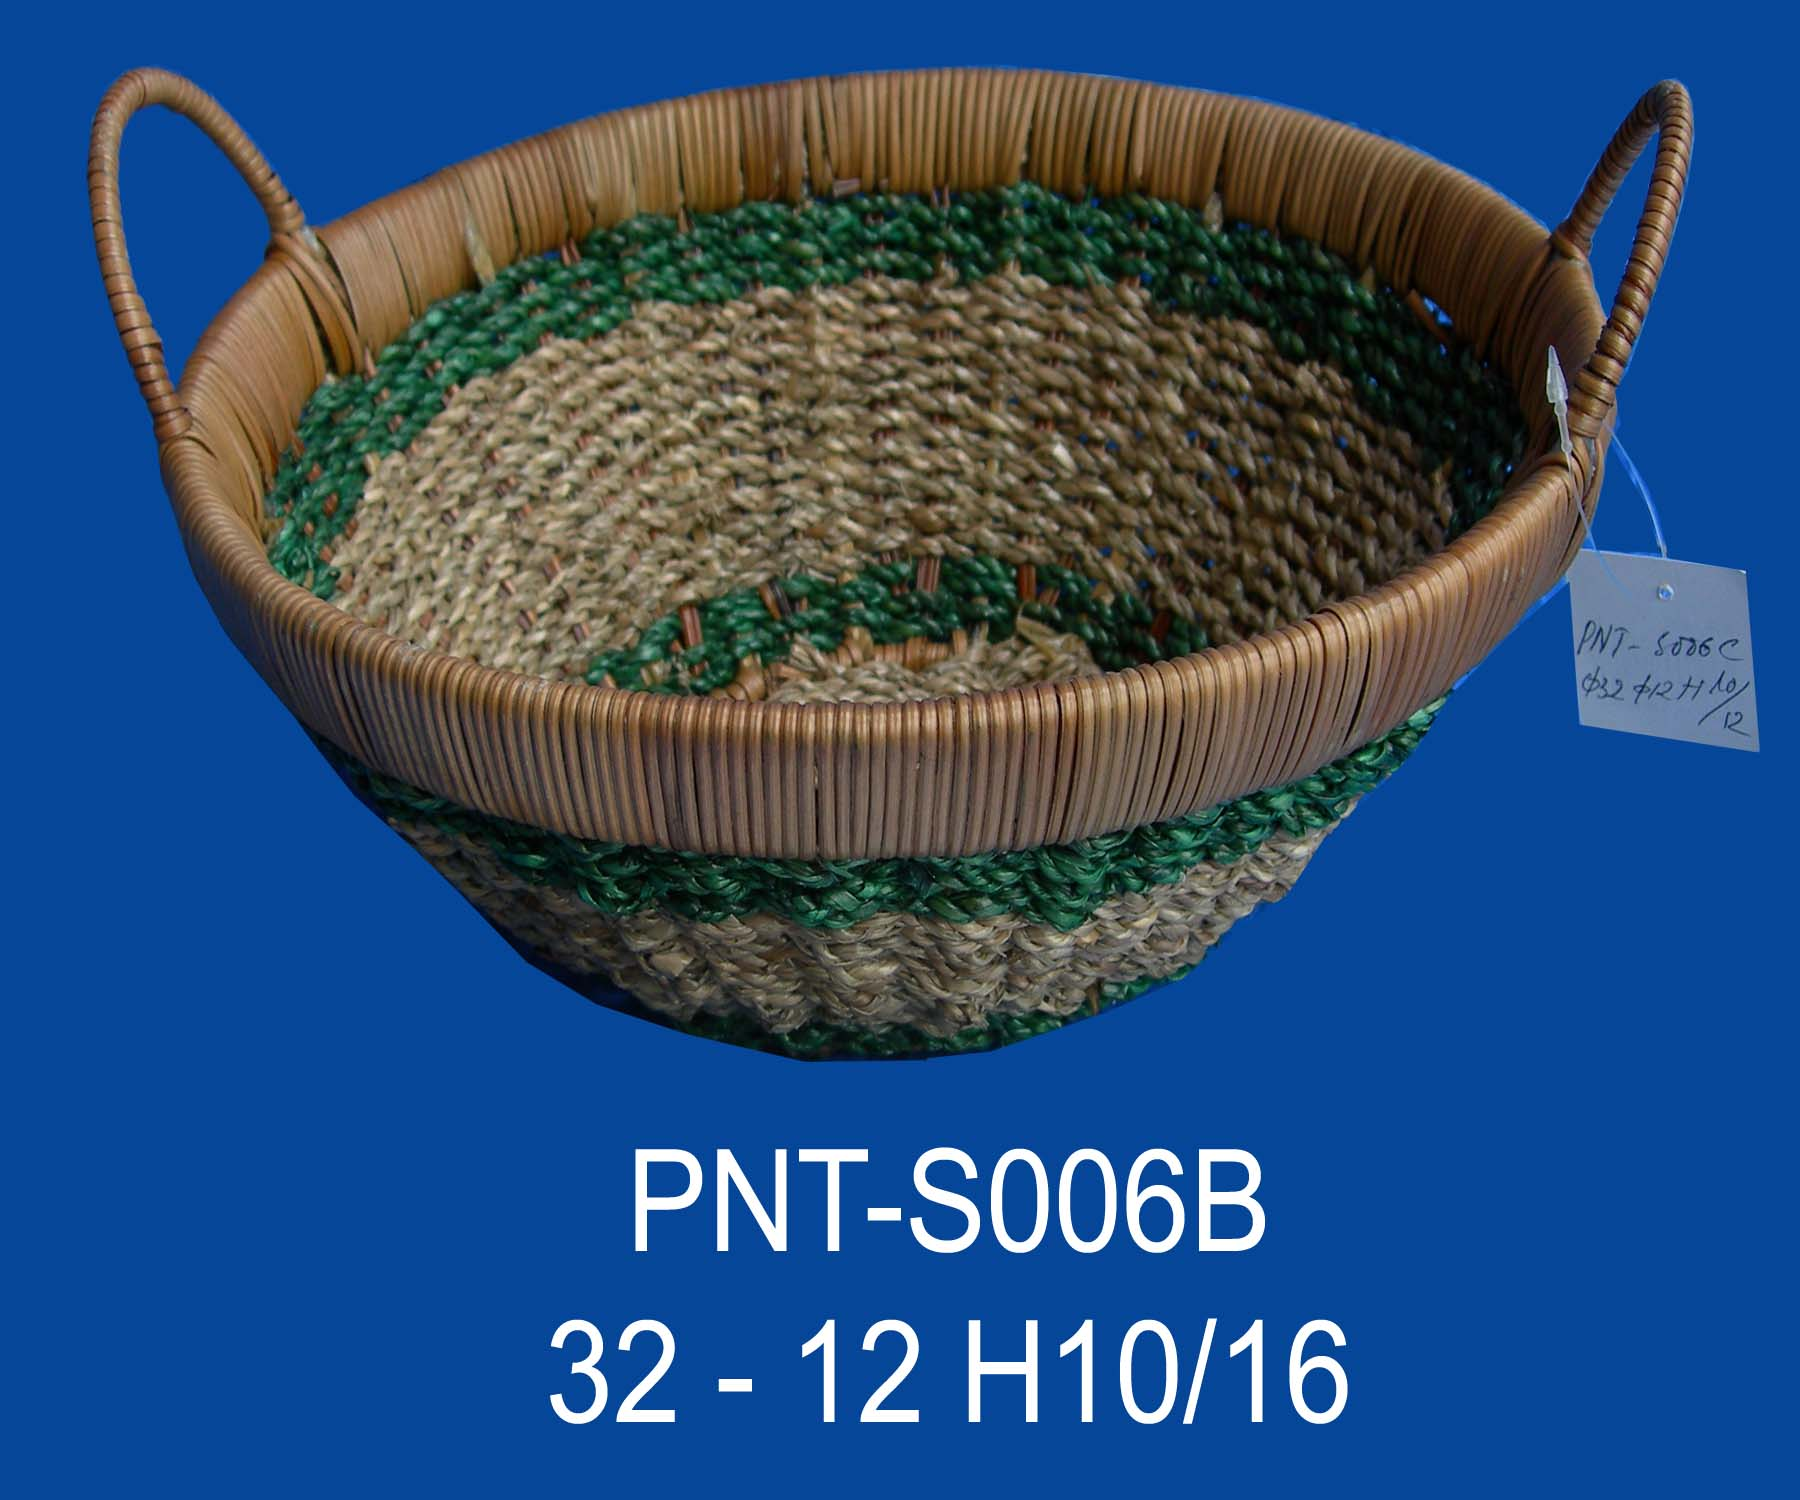 Bamboo rattan baskets and willow at Best Price from Vietnam